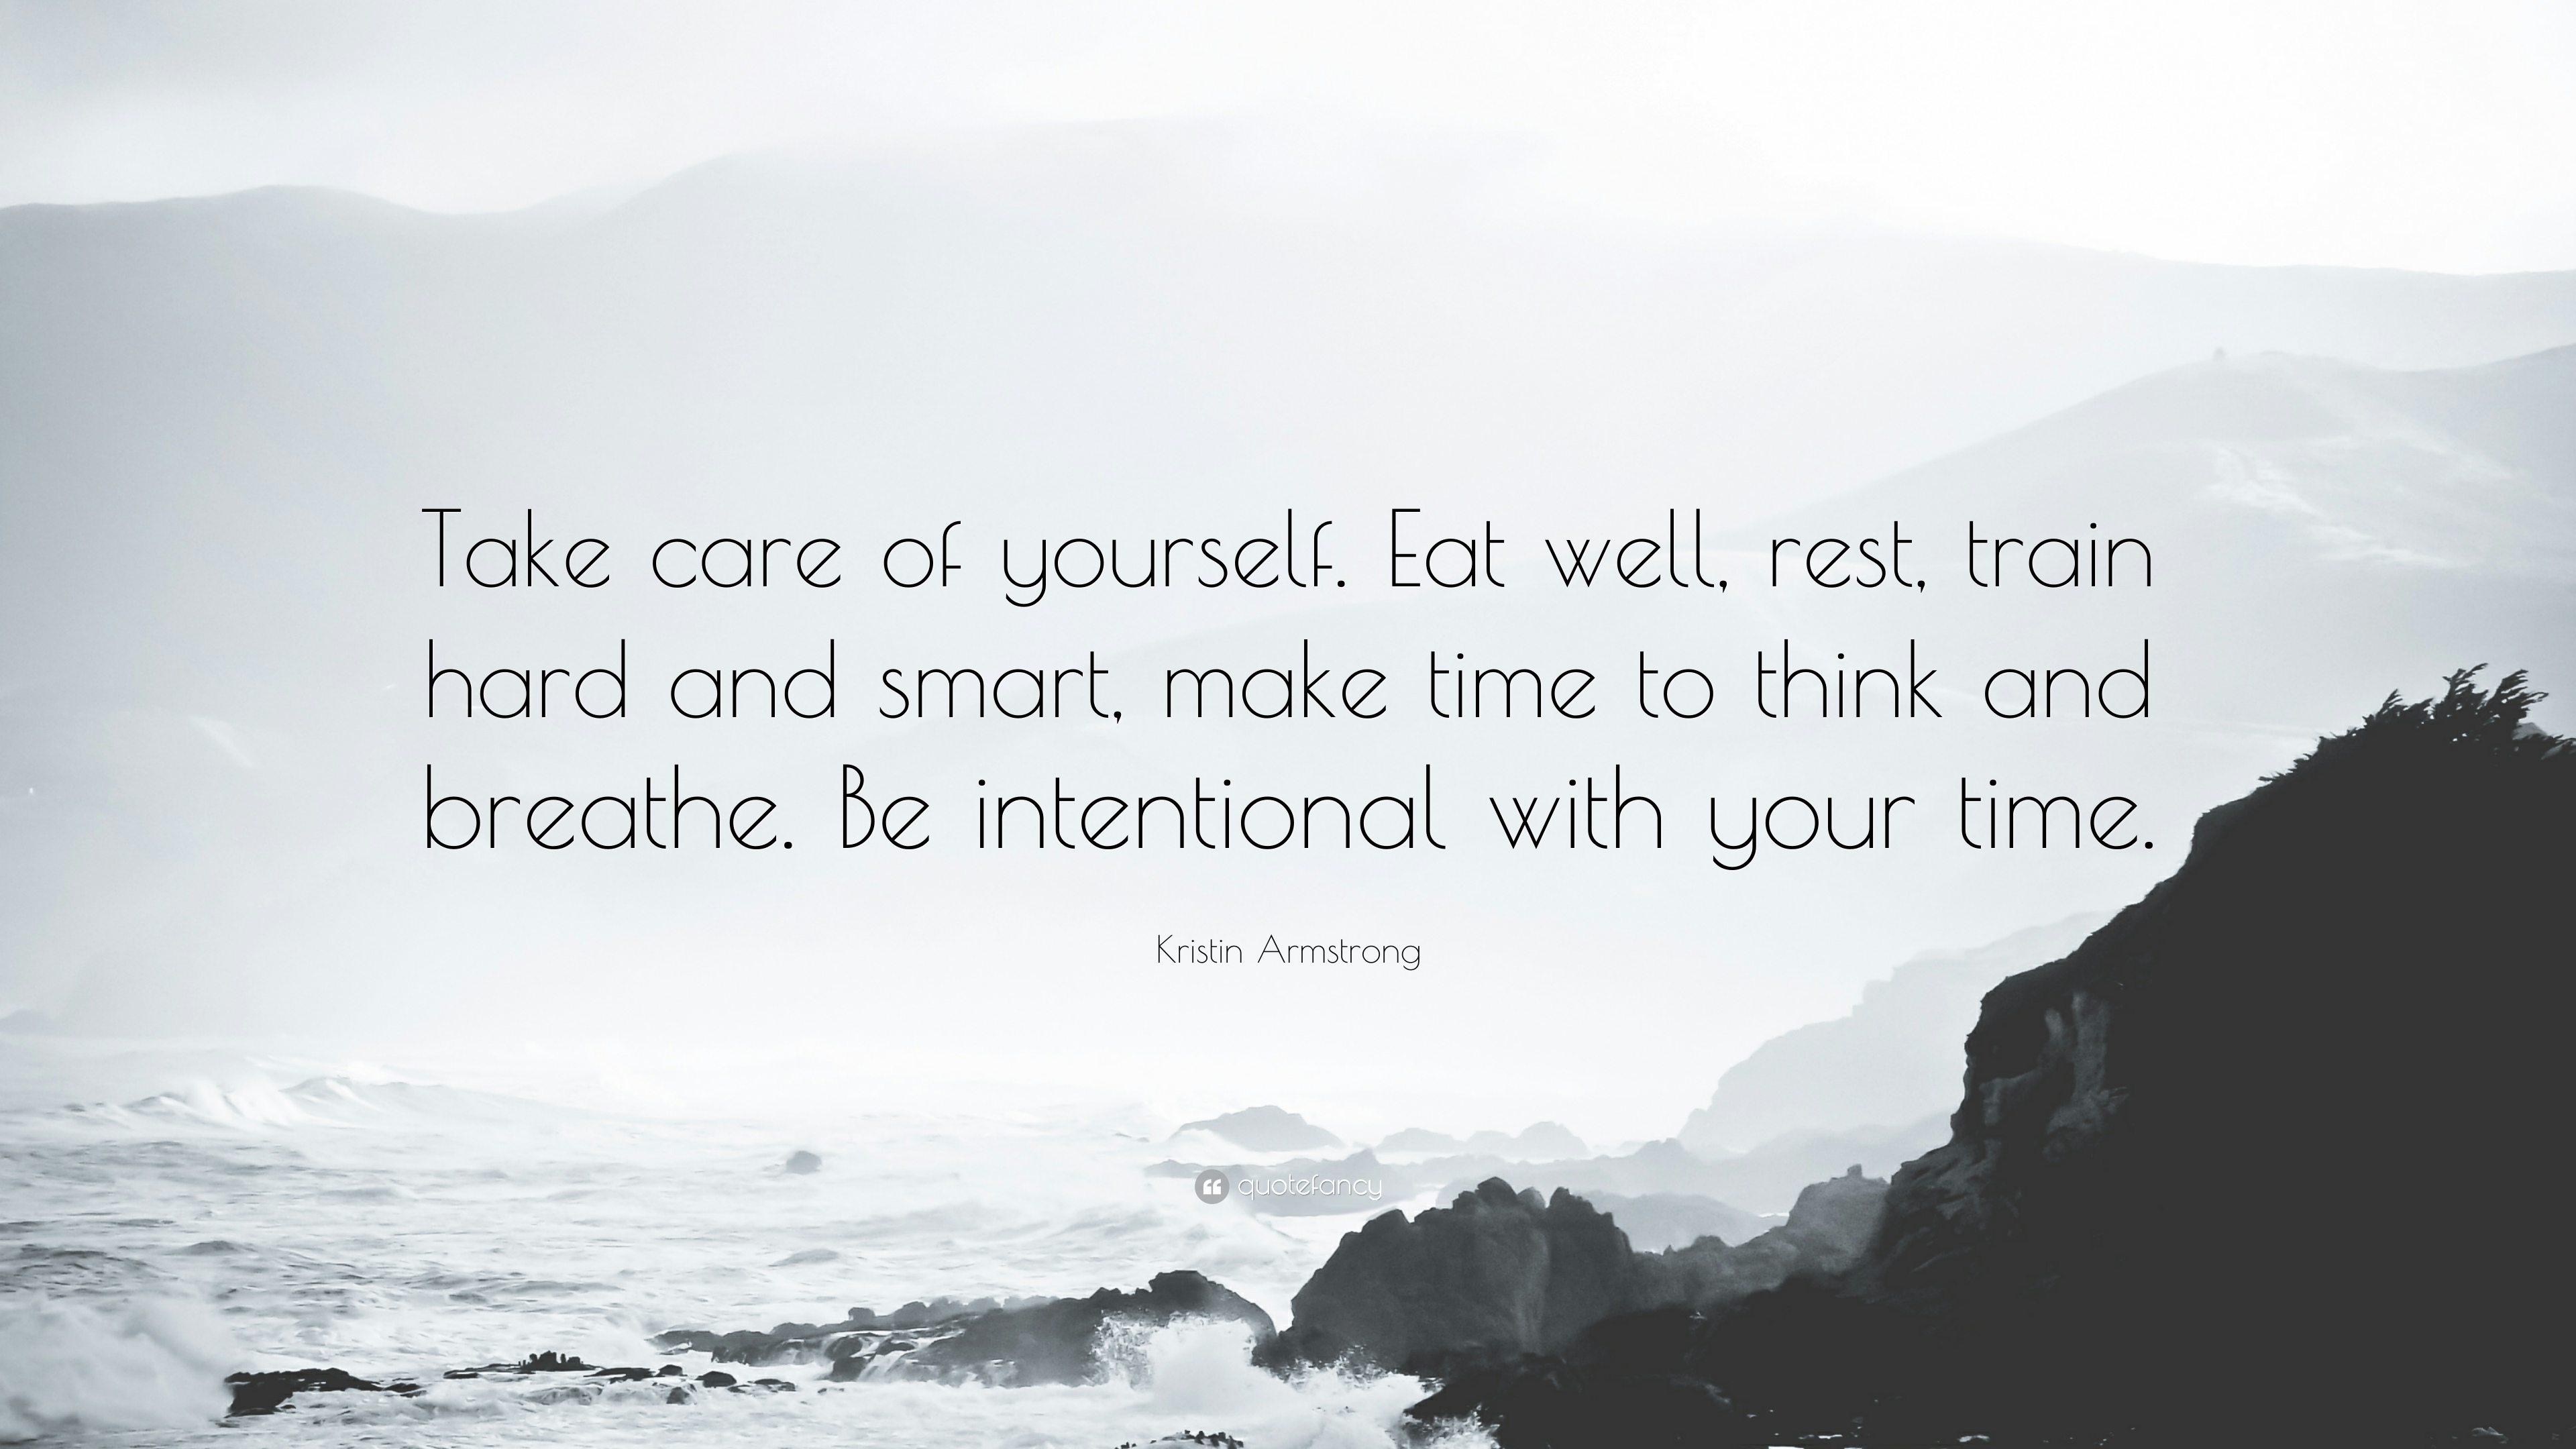 408392-Kristin-Armstrong-Quote-Take-care-of-yourself-Eat-well-rest-train.jpg